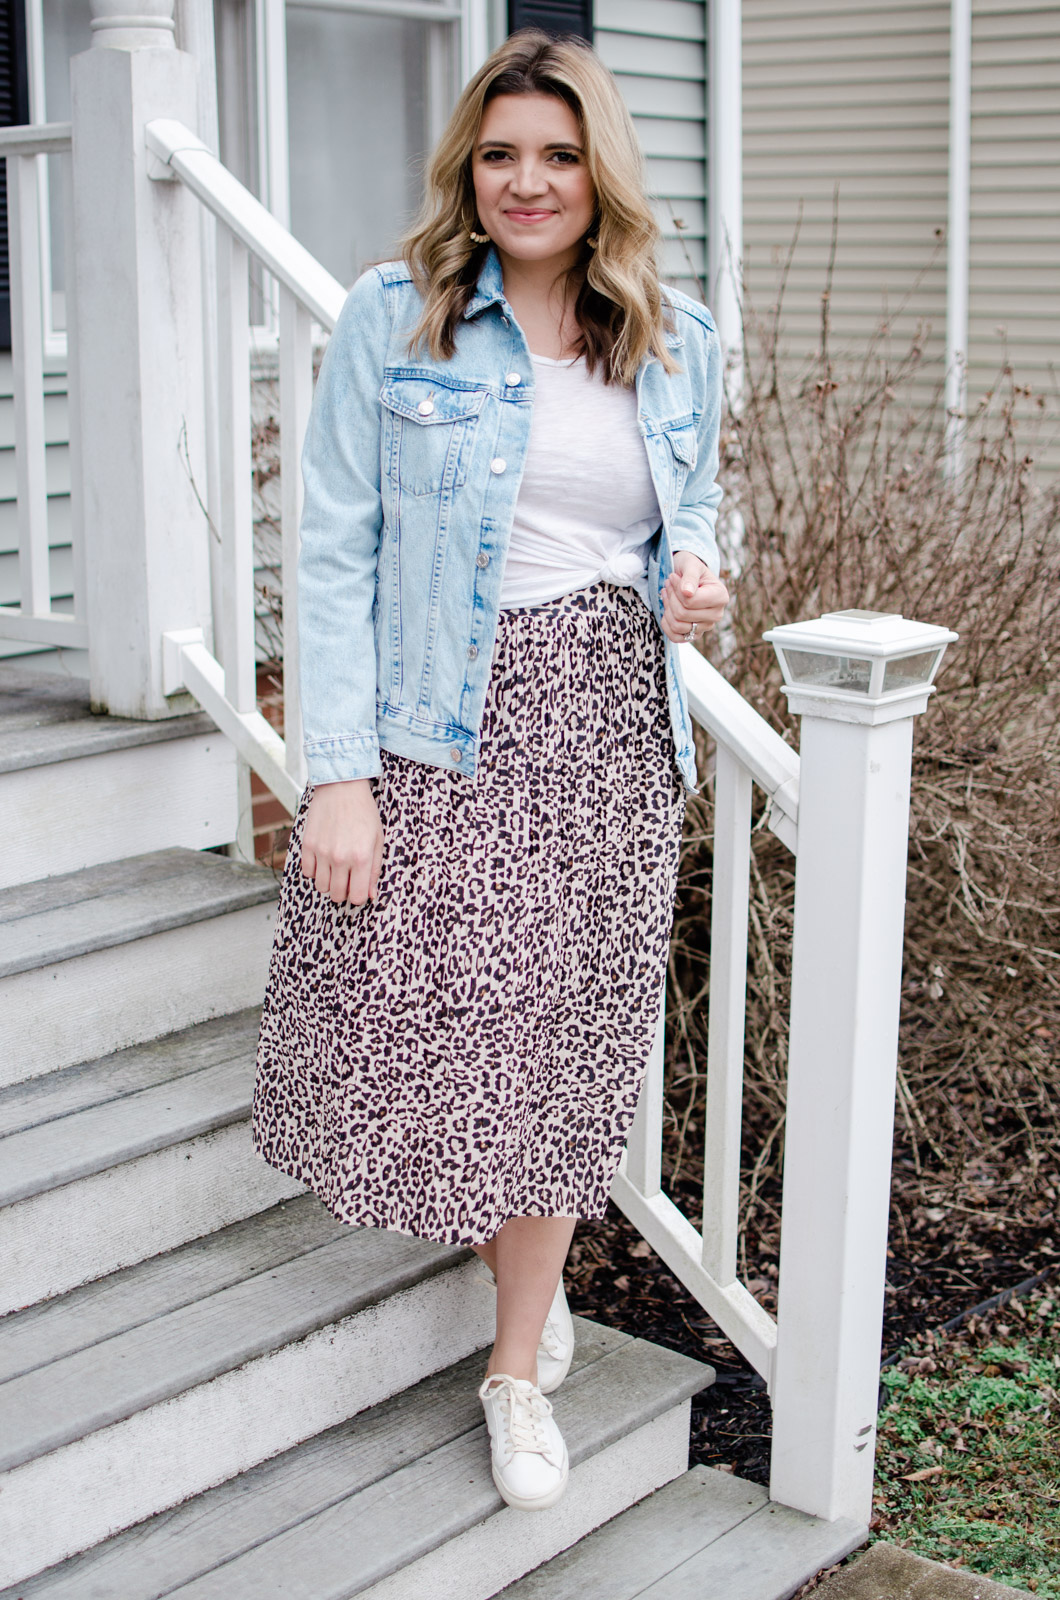 Affordable style blogger Lauren Dix shares six oversized denim jacket outfits for spring, using a $35 jean jacket from H&M!